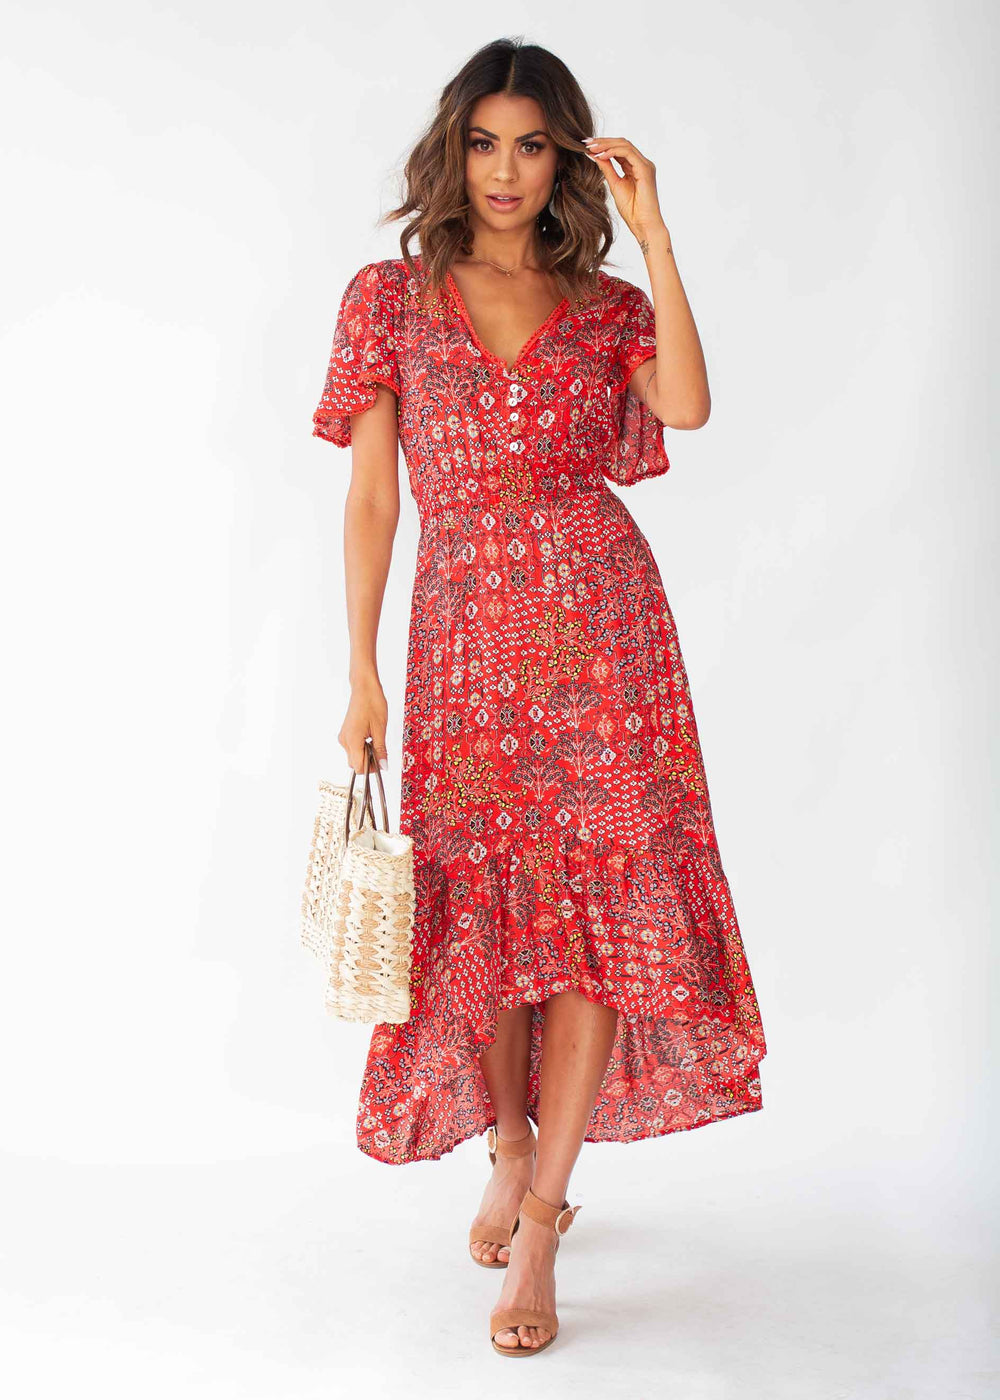 California Valley Midi Dress - Fiesta